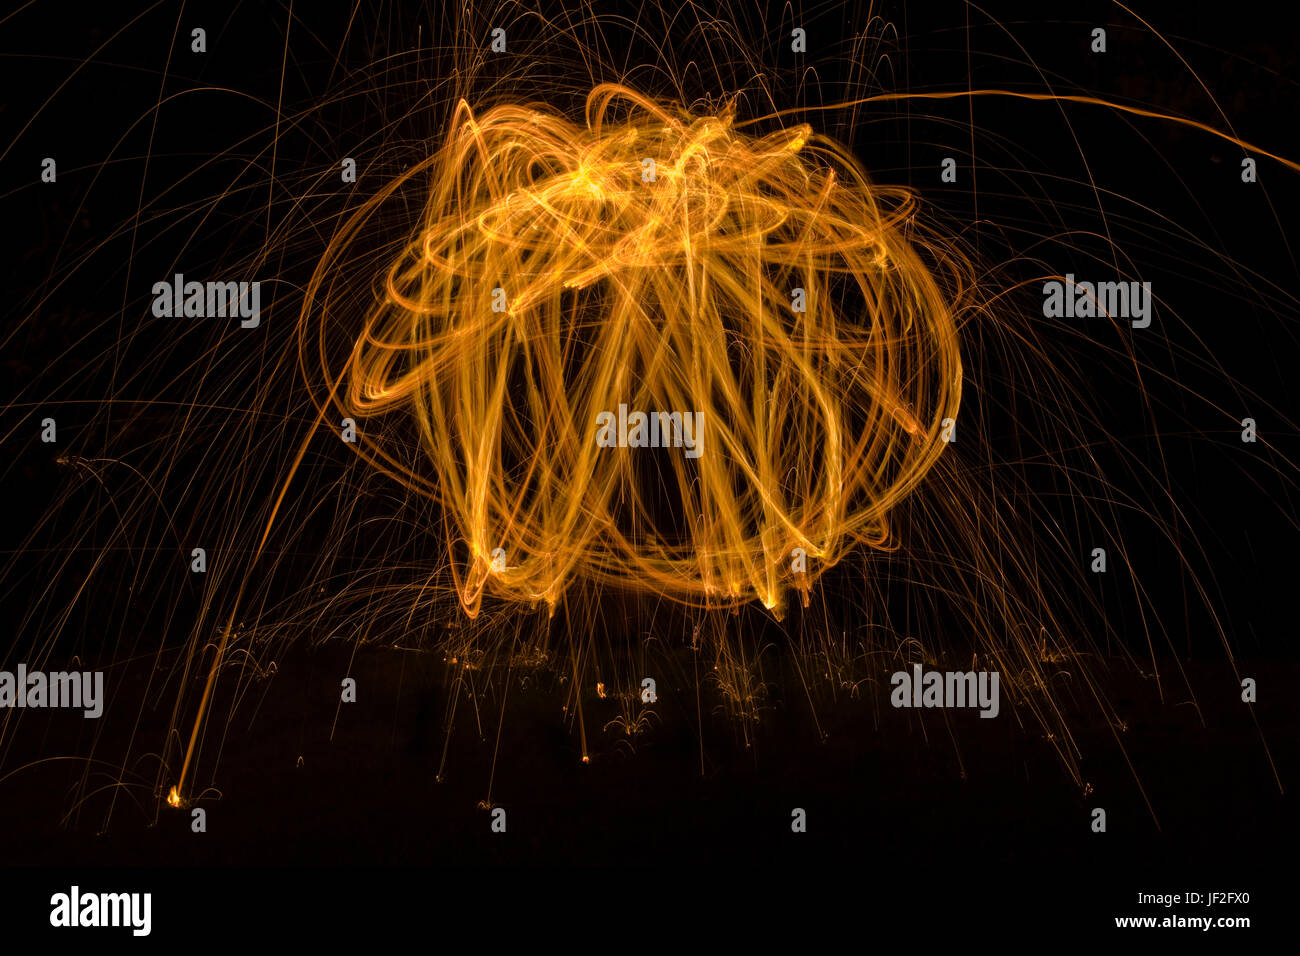 Abstract Communication with Light Painting - Stock Image